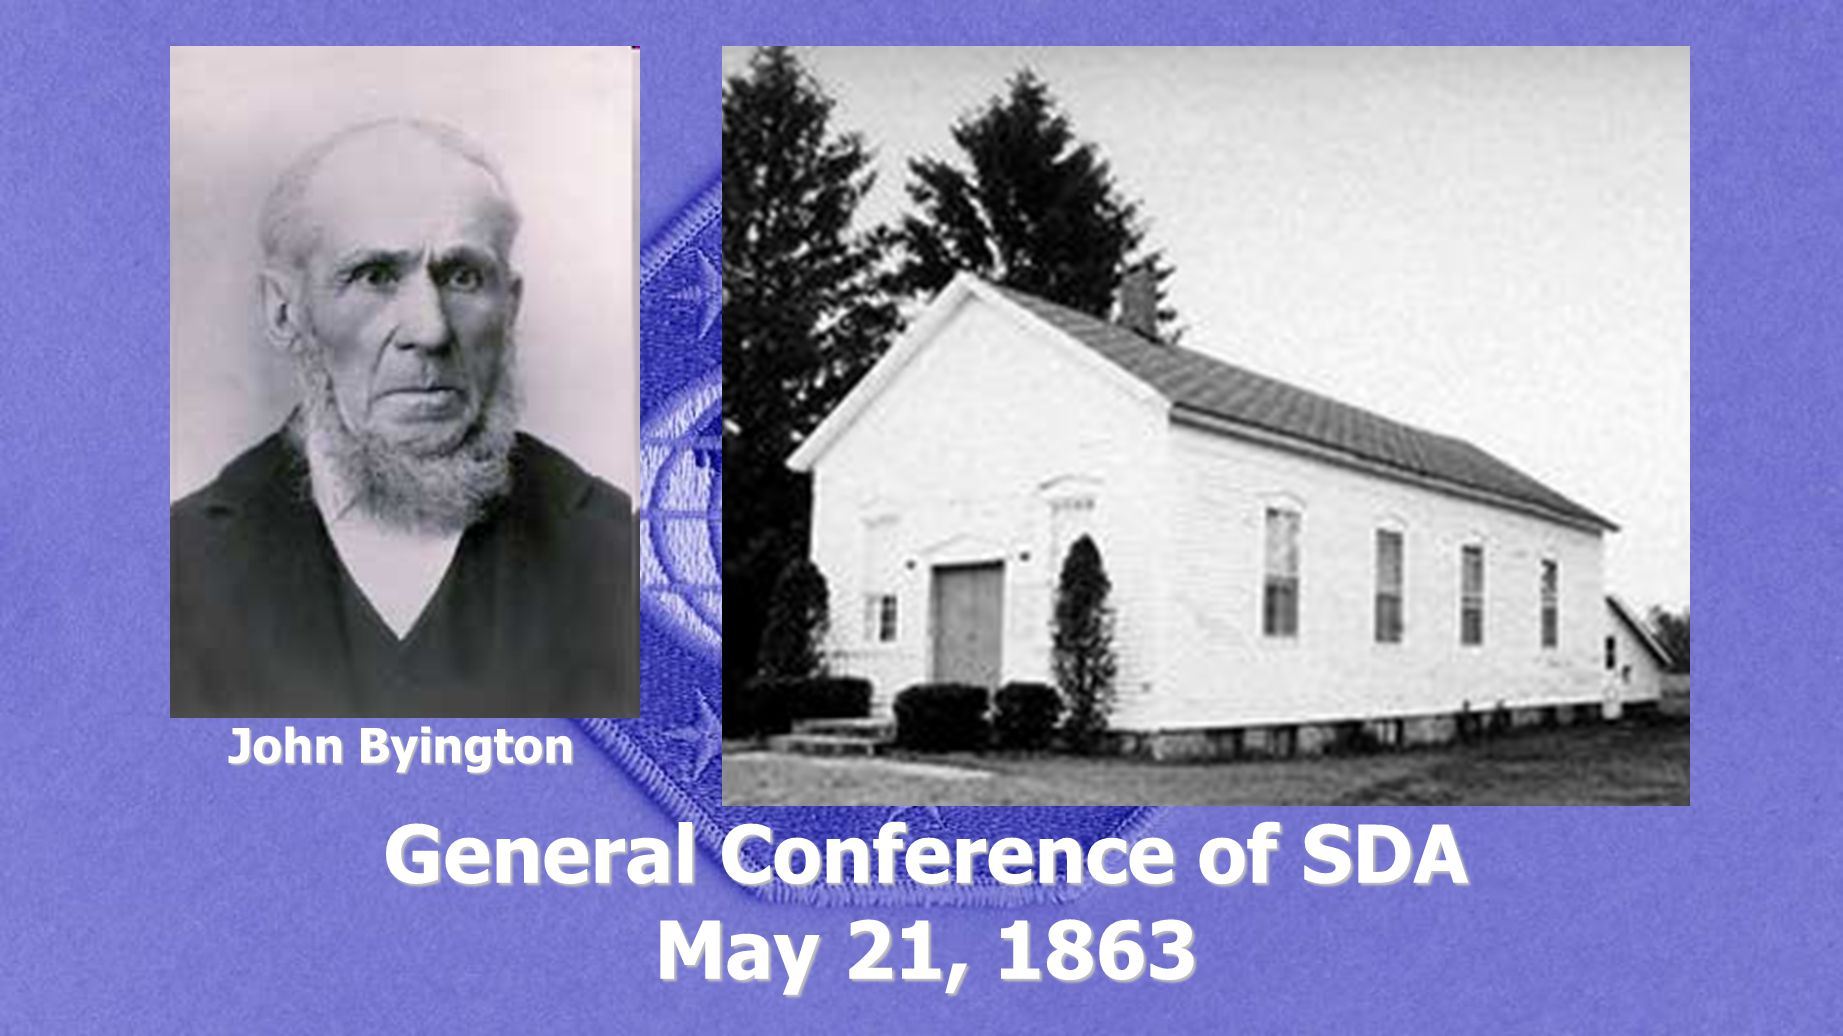 General Conference of SDA May 21, 1863